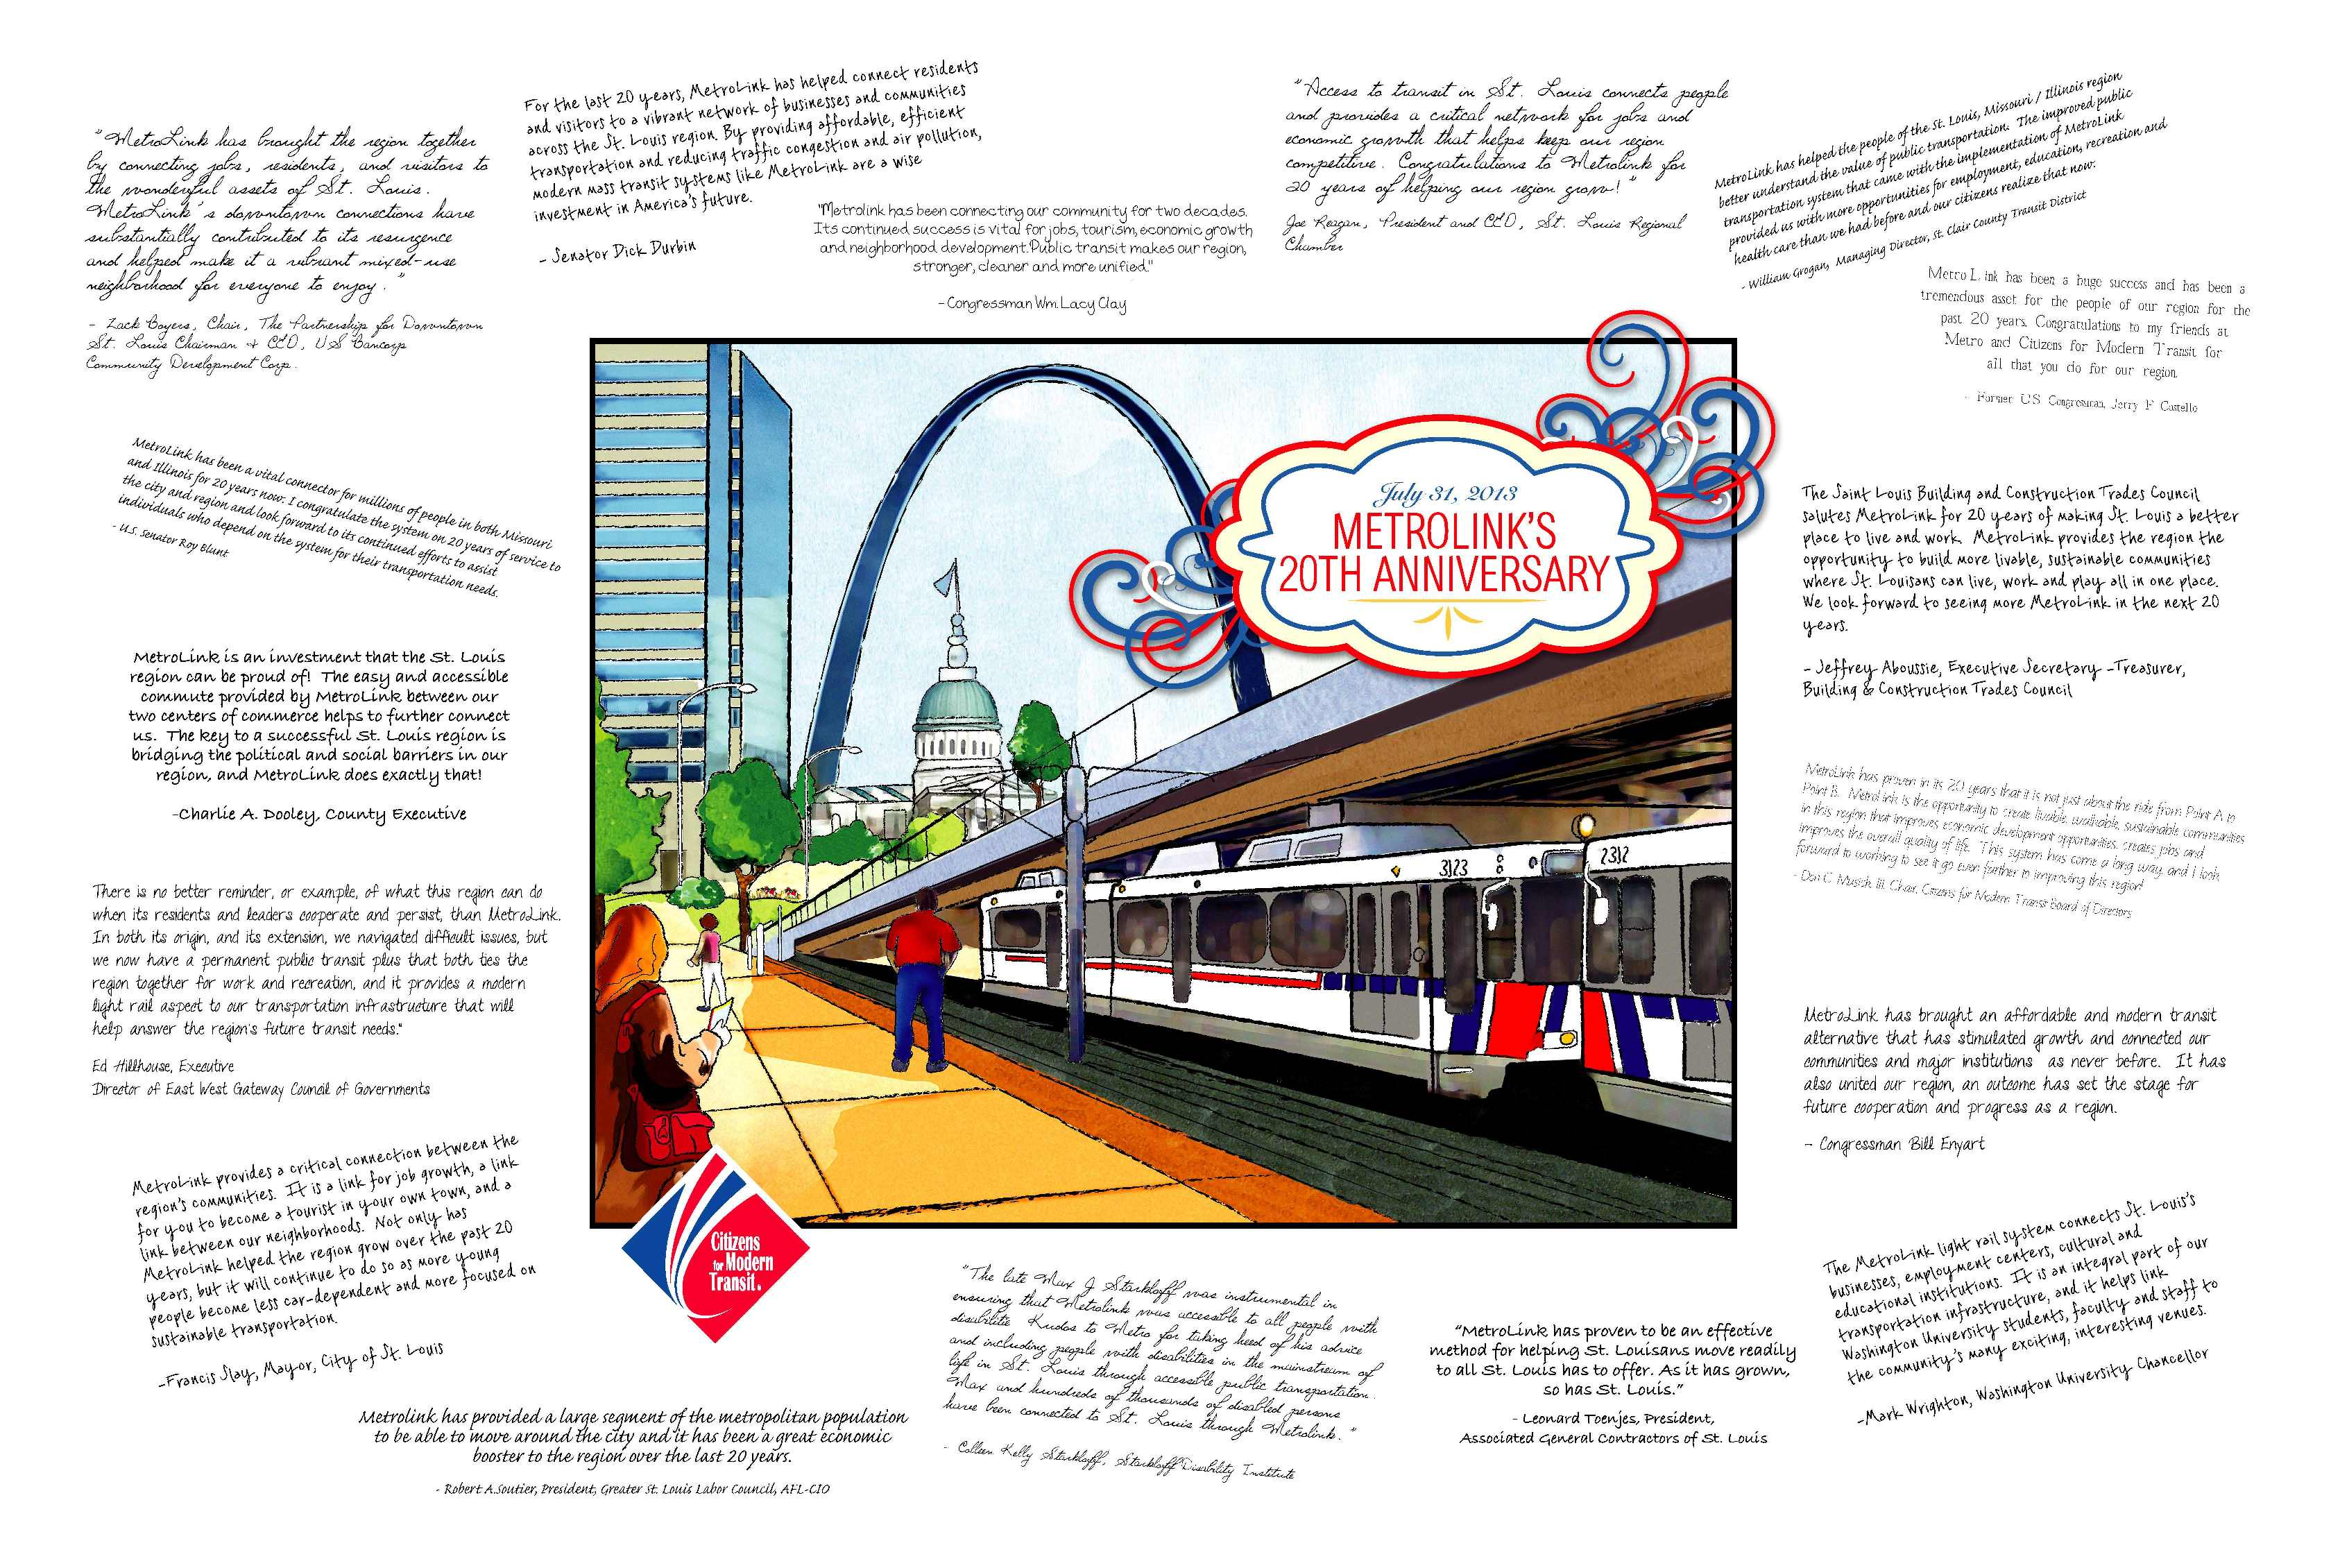 Local leaders weigh in on MetroLink's importance to St. Louis